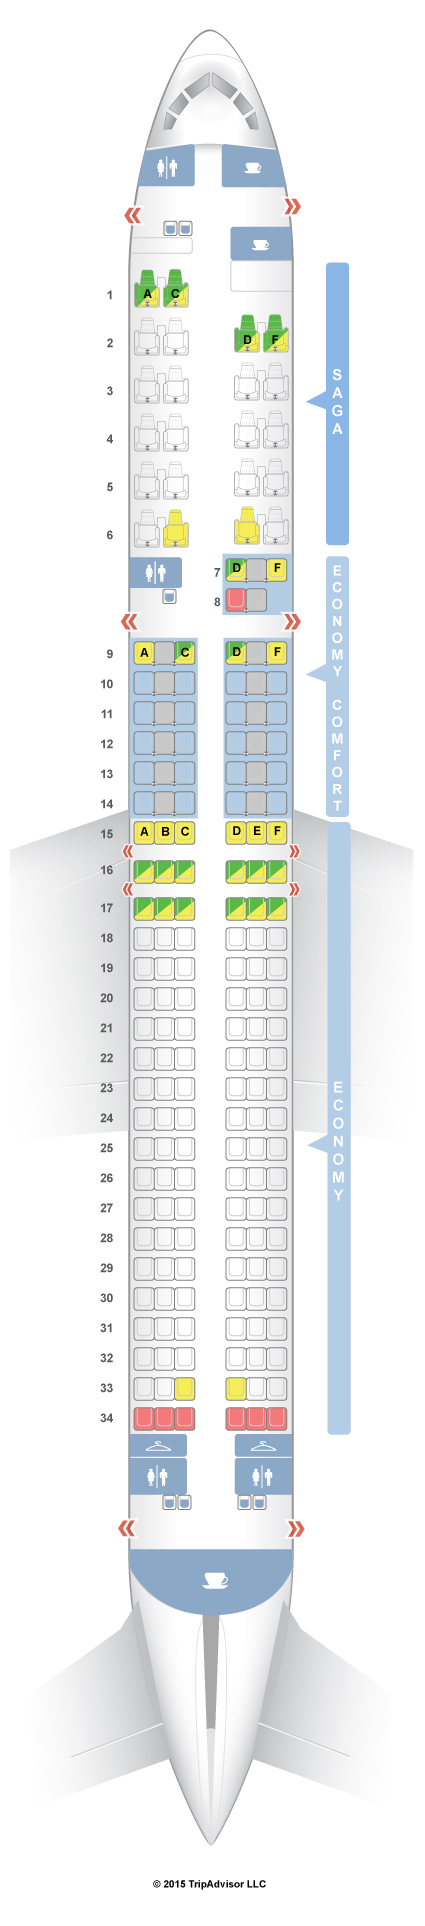 Seatguru seat map icelandair boeing also travel rh pinterest